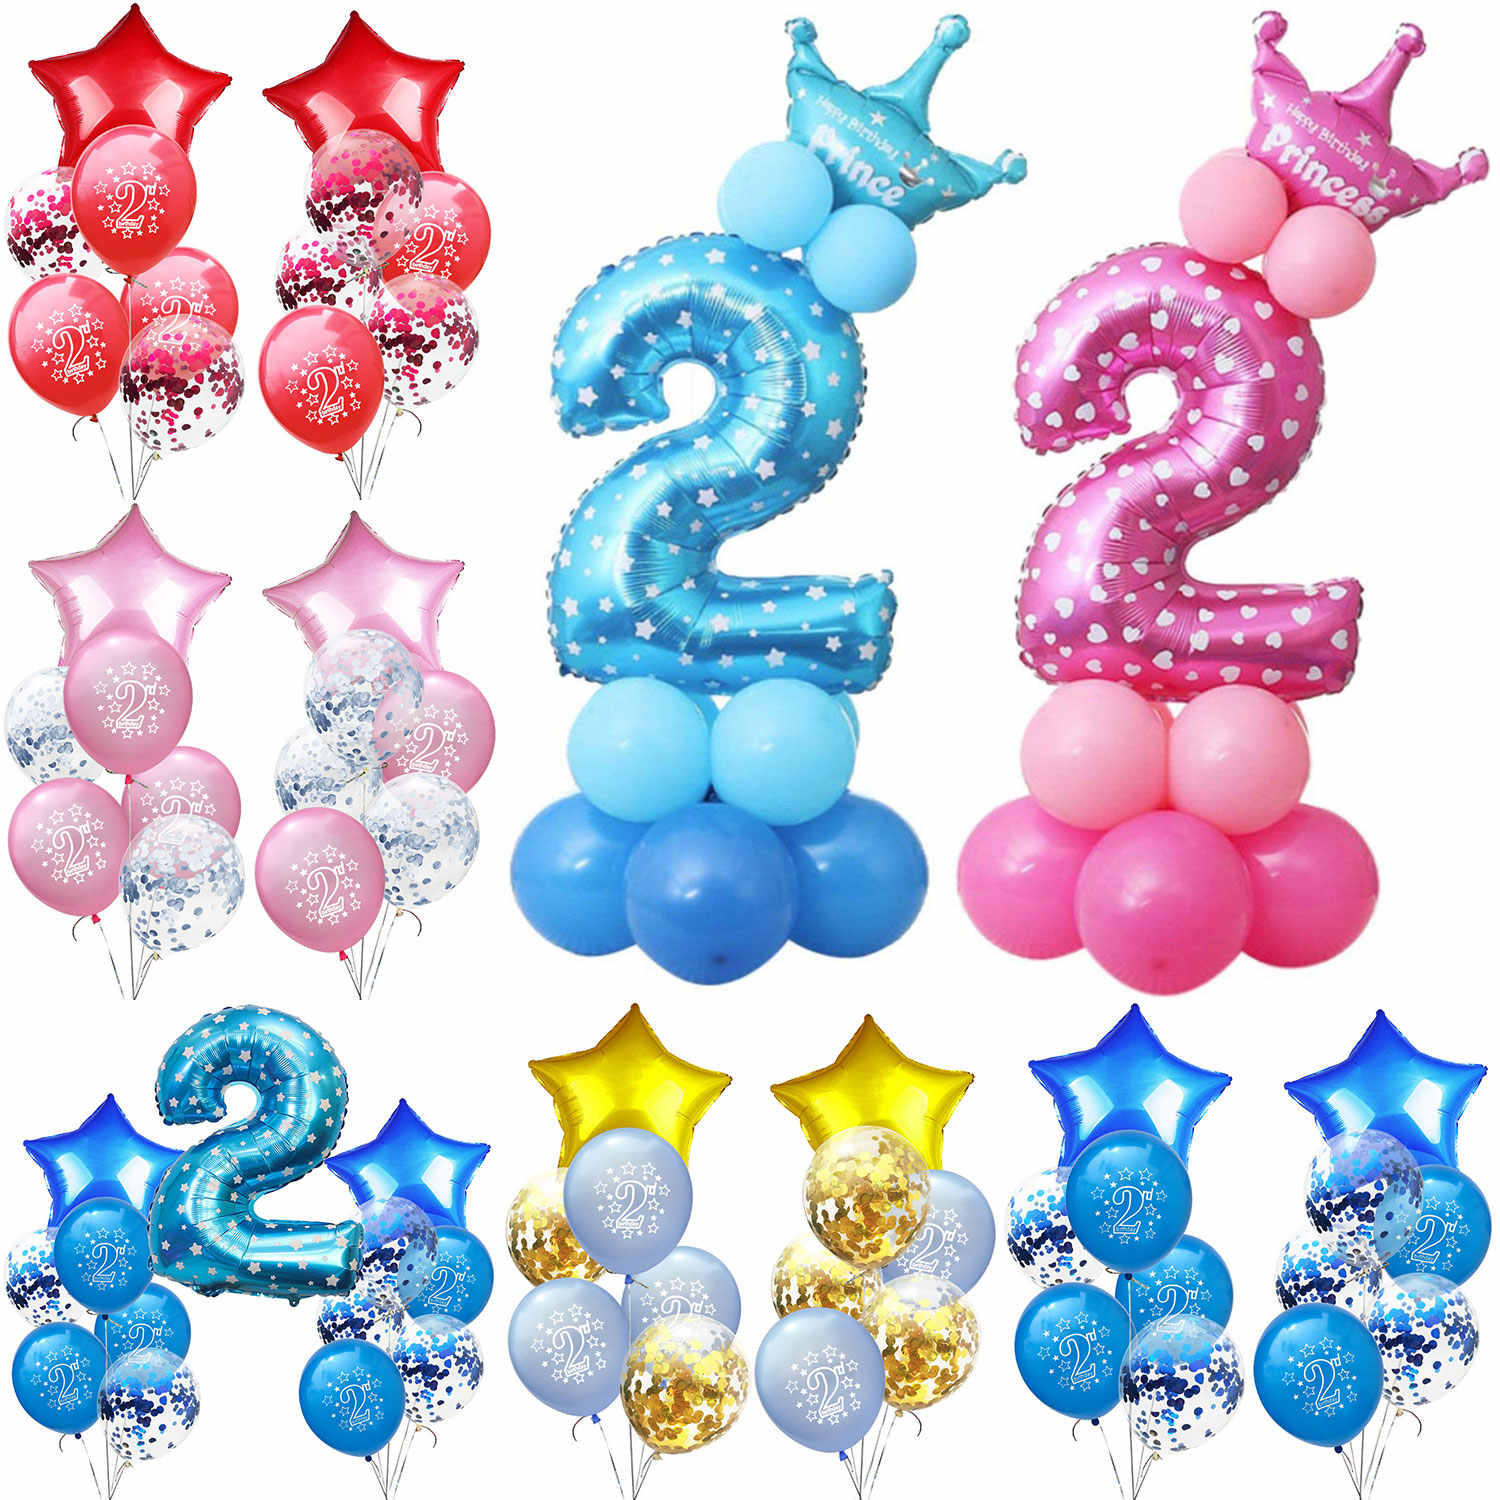 AMAWILL 12 18inch 2 Year Old Birthday Pink Blue Latex Balloons Boy Girl Happy 2nd